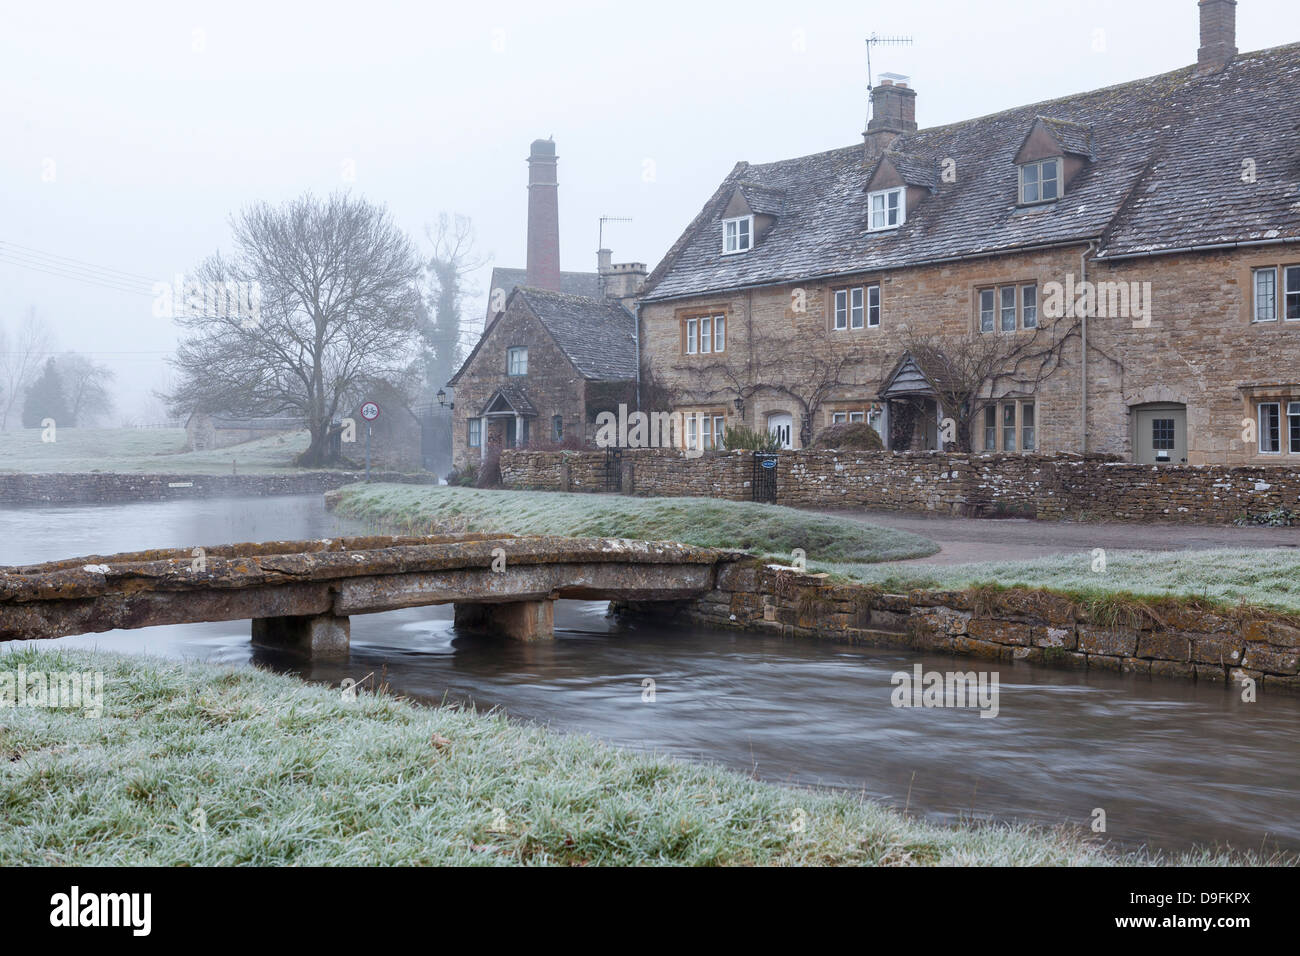 Un matin brumeux et frosty winters, Lower Slaughter, Cotswolds, Gloucestershire, England, UK Photo Stock